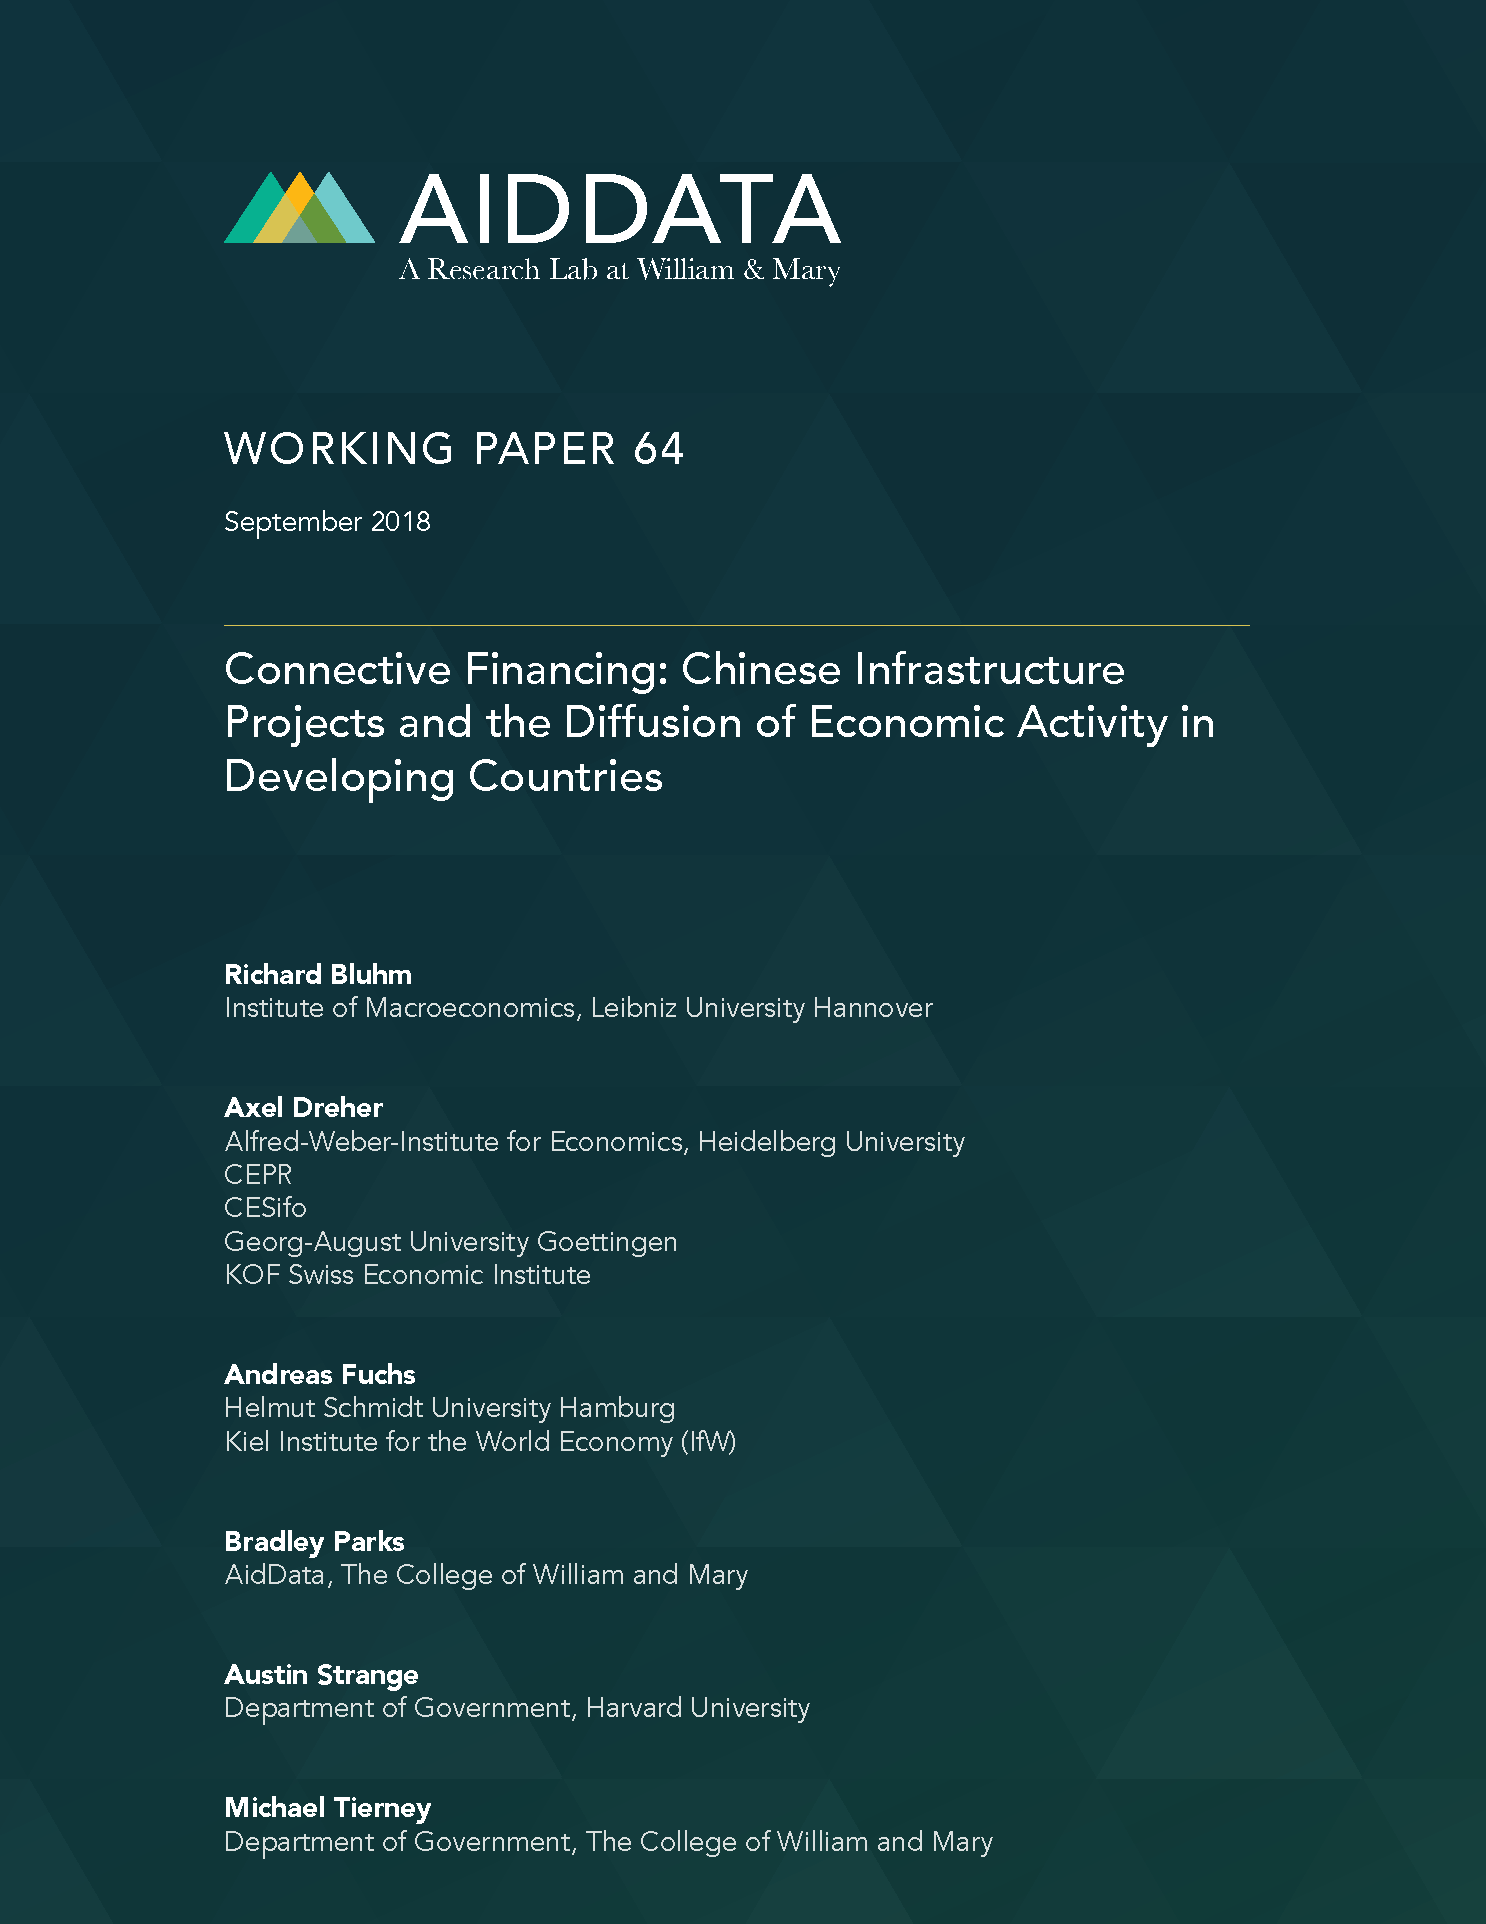 Connective Financing: Chinese Infrastructure Projects and the Diffusion of Economic Activity in Developing Countries